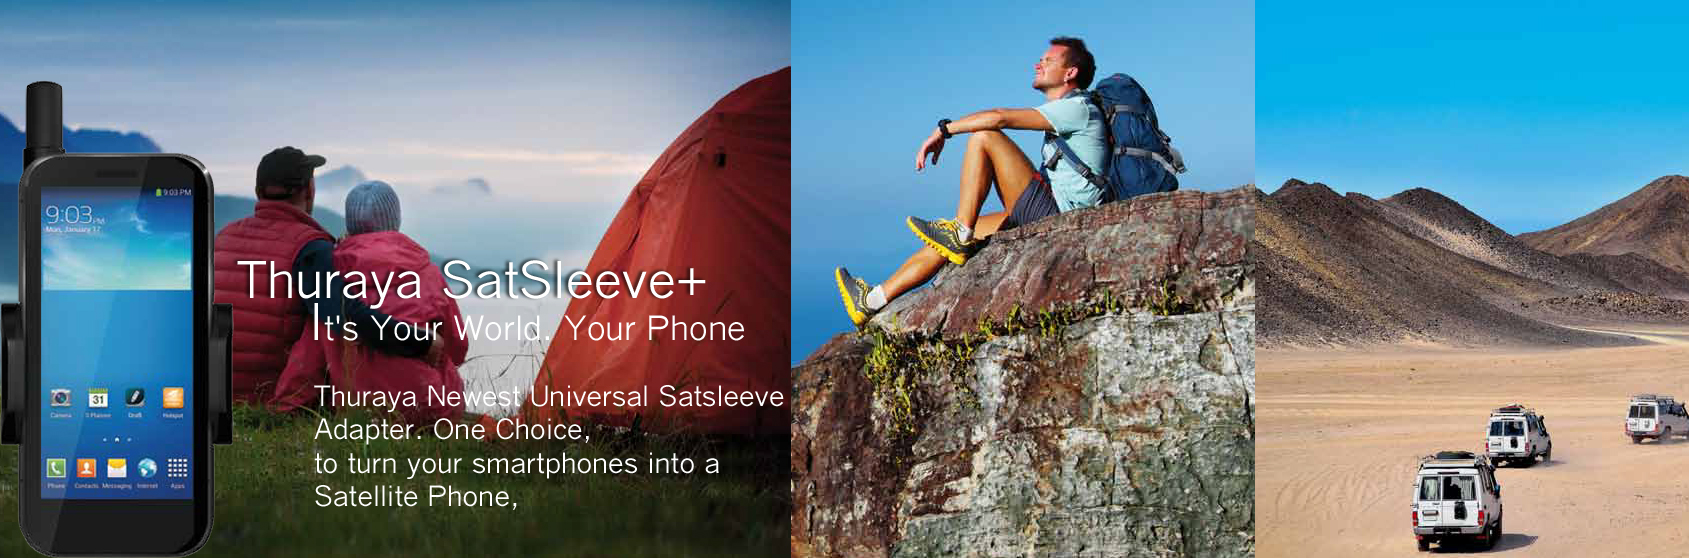 thuraya-satsleeve-plus-universal-adapter-call-europe-africa-asia-with-your-smartphone-good.jpg